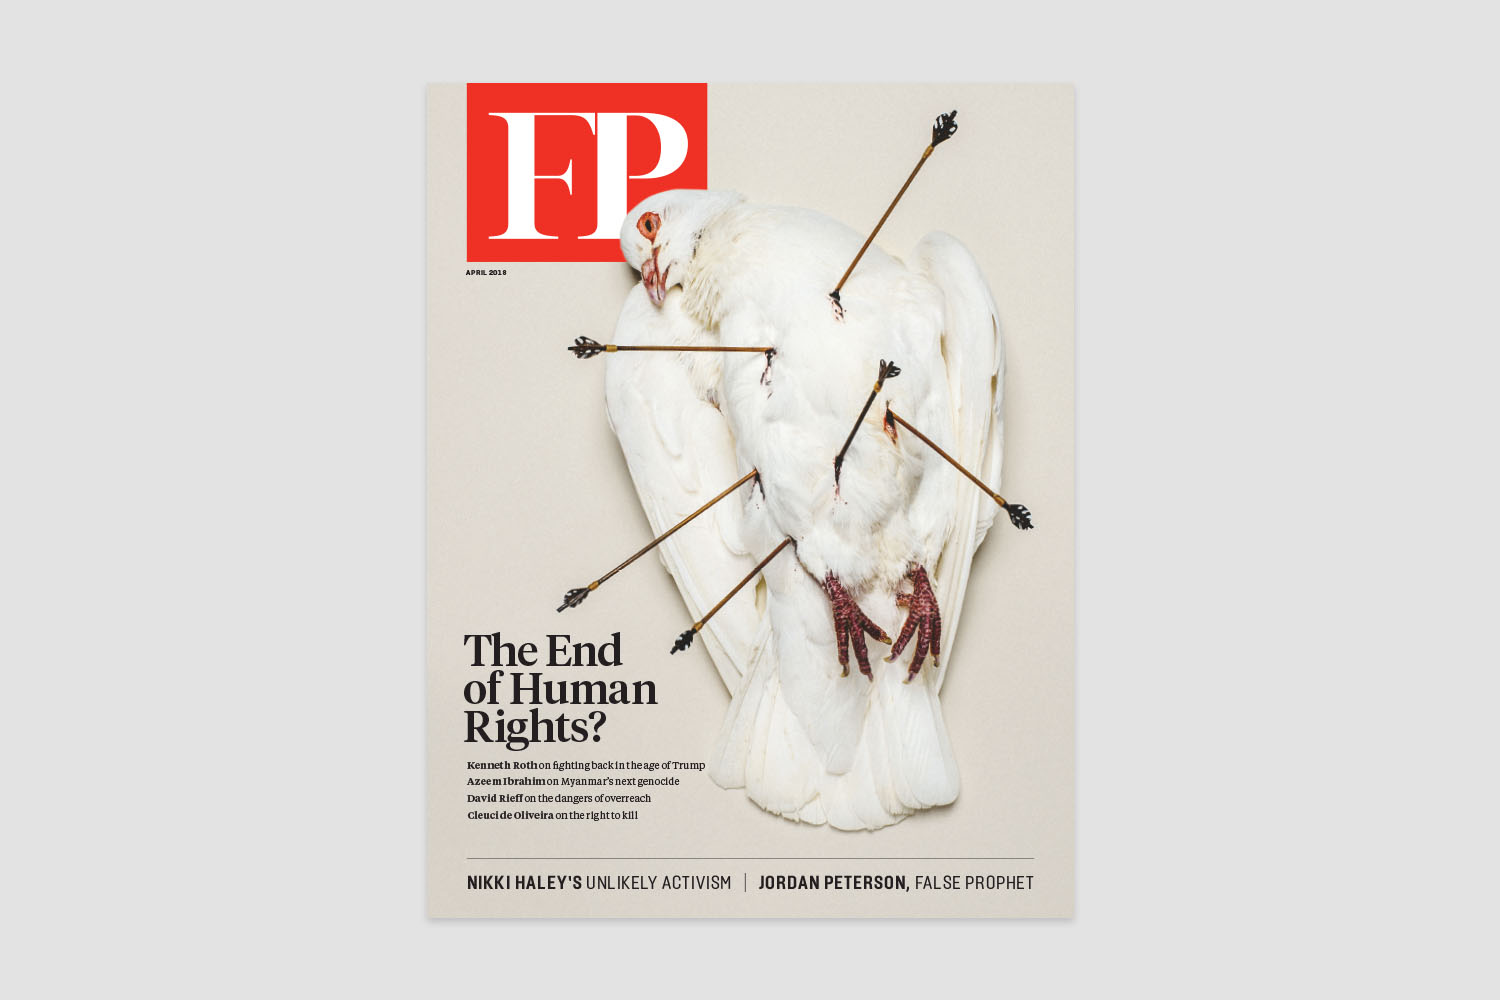 The End of Human Rights? cover image